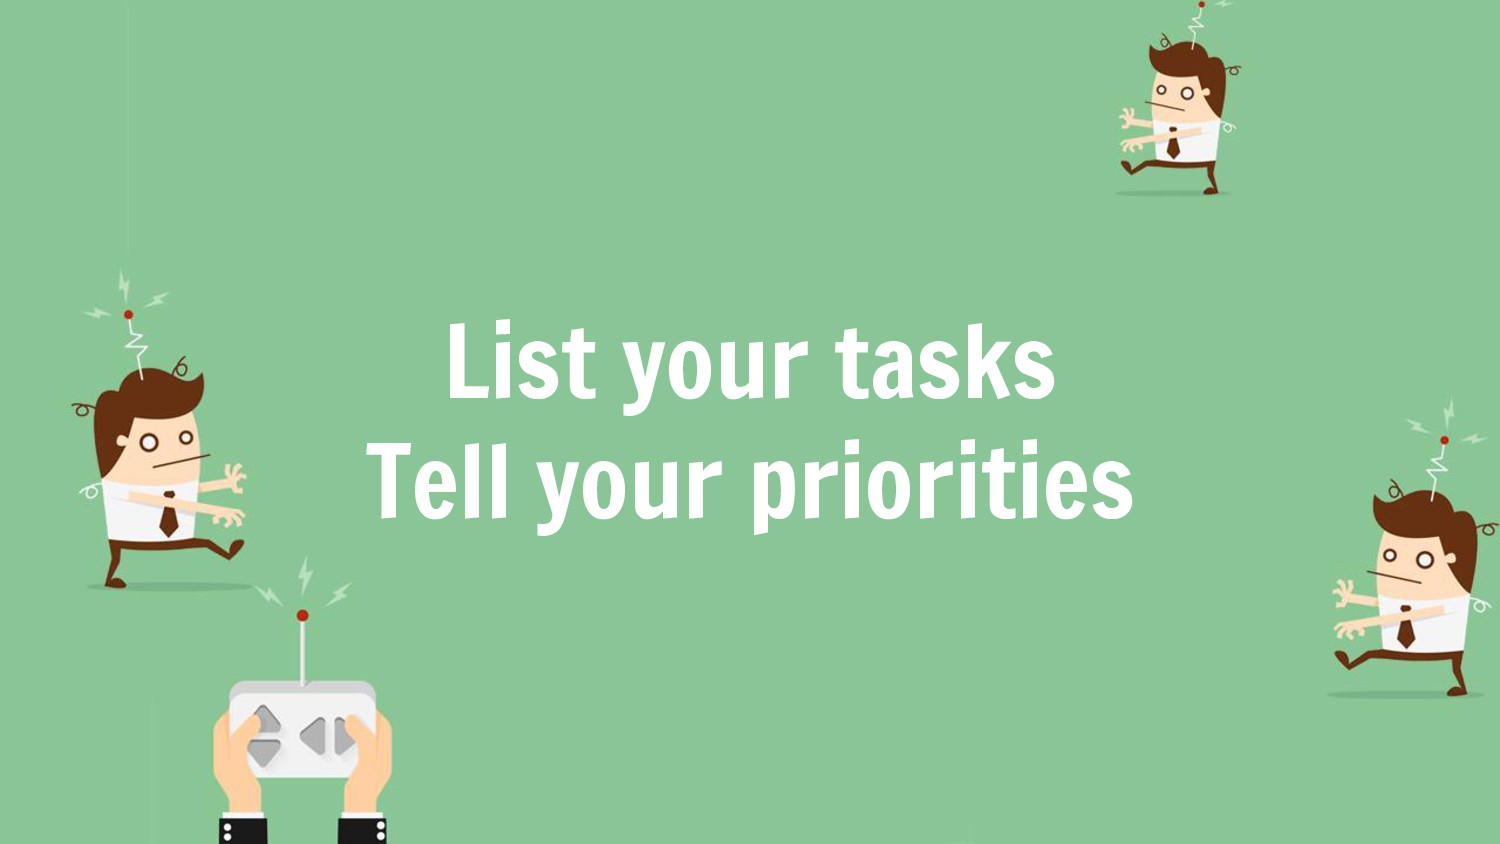 List your tasks Tell your priorities